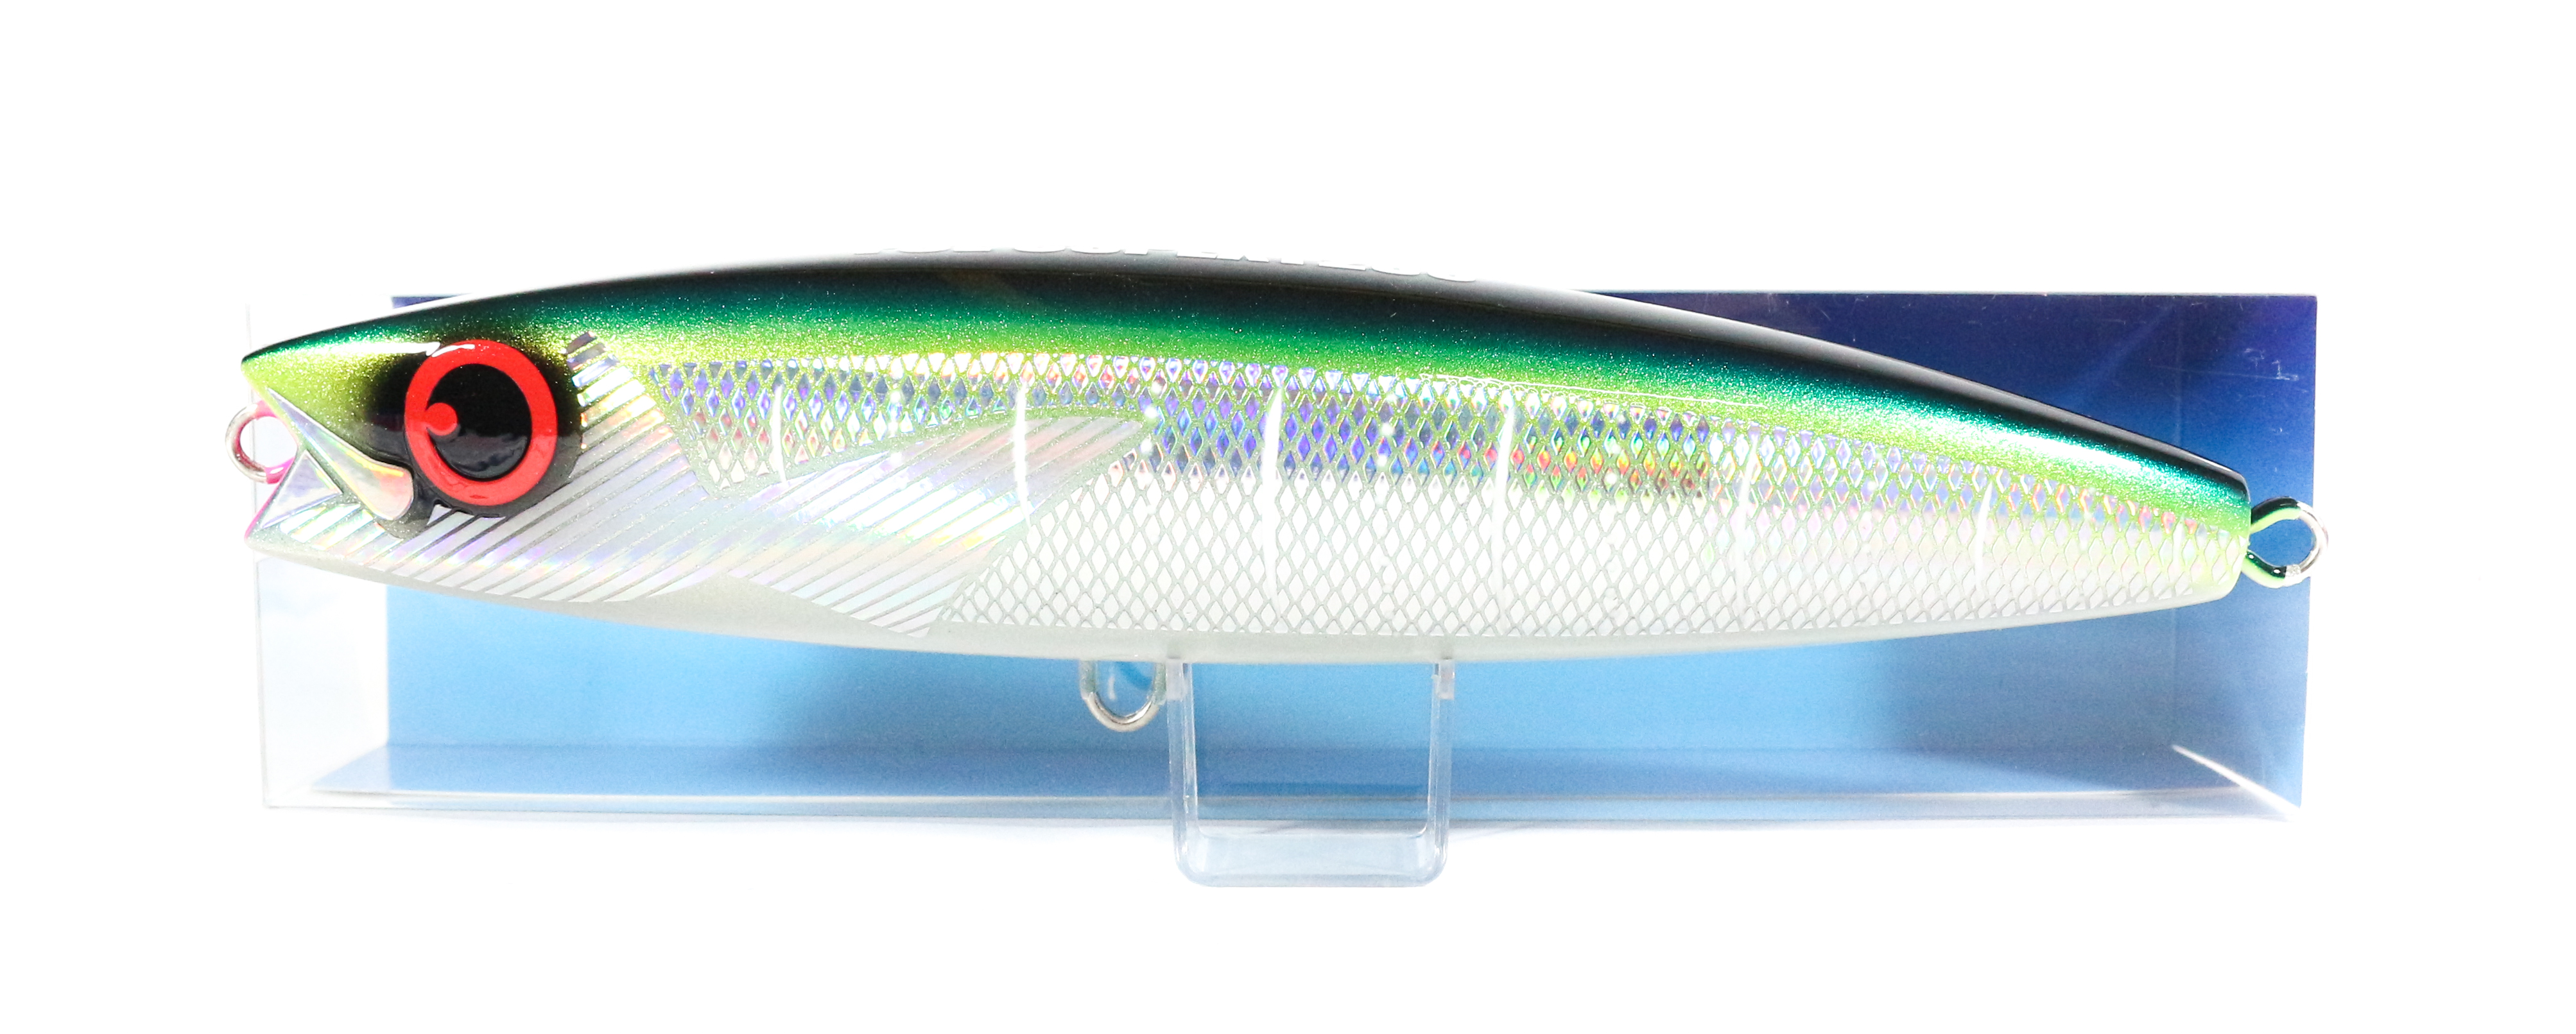 FCL Labo Stick Bait CSP EXT 230F Floating Lure 165 grams TUNA (9011)